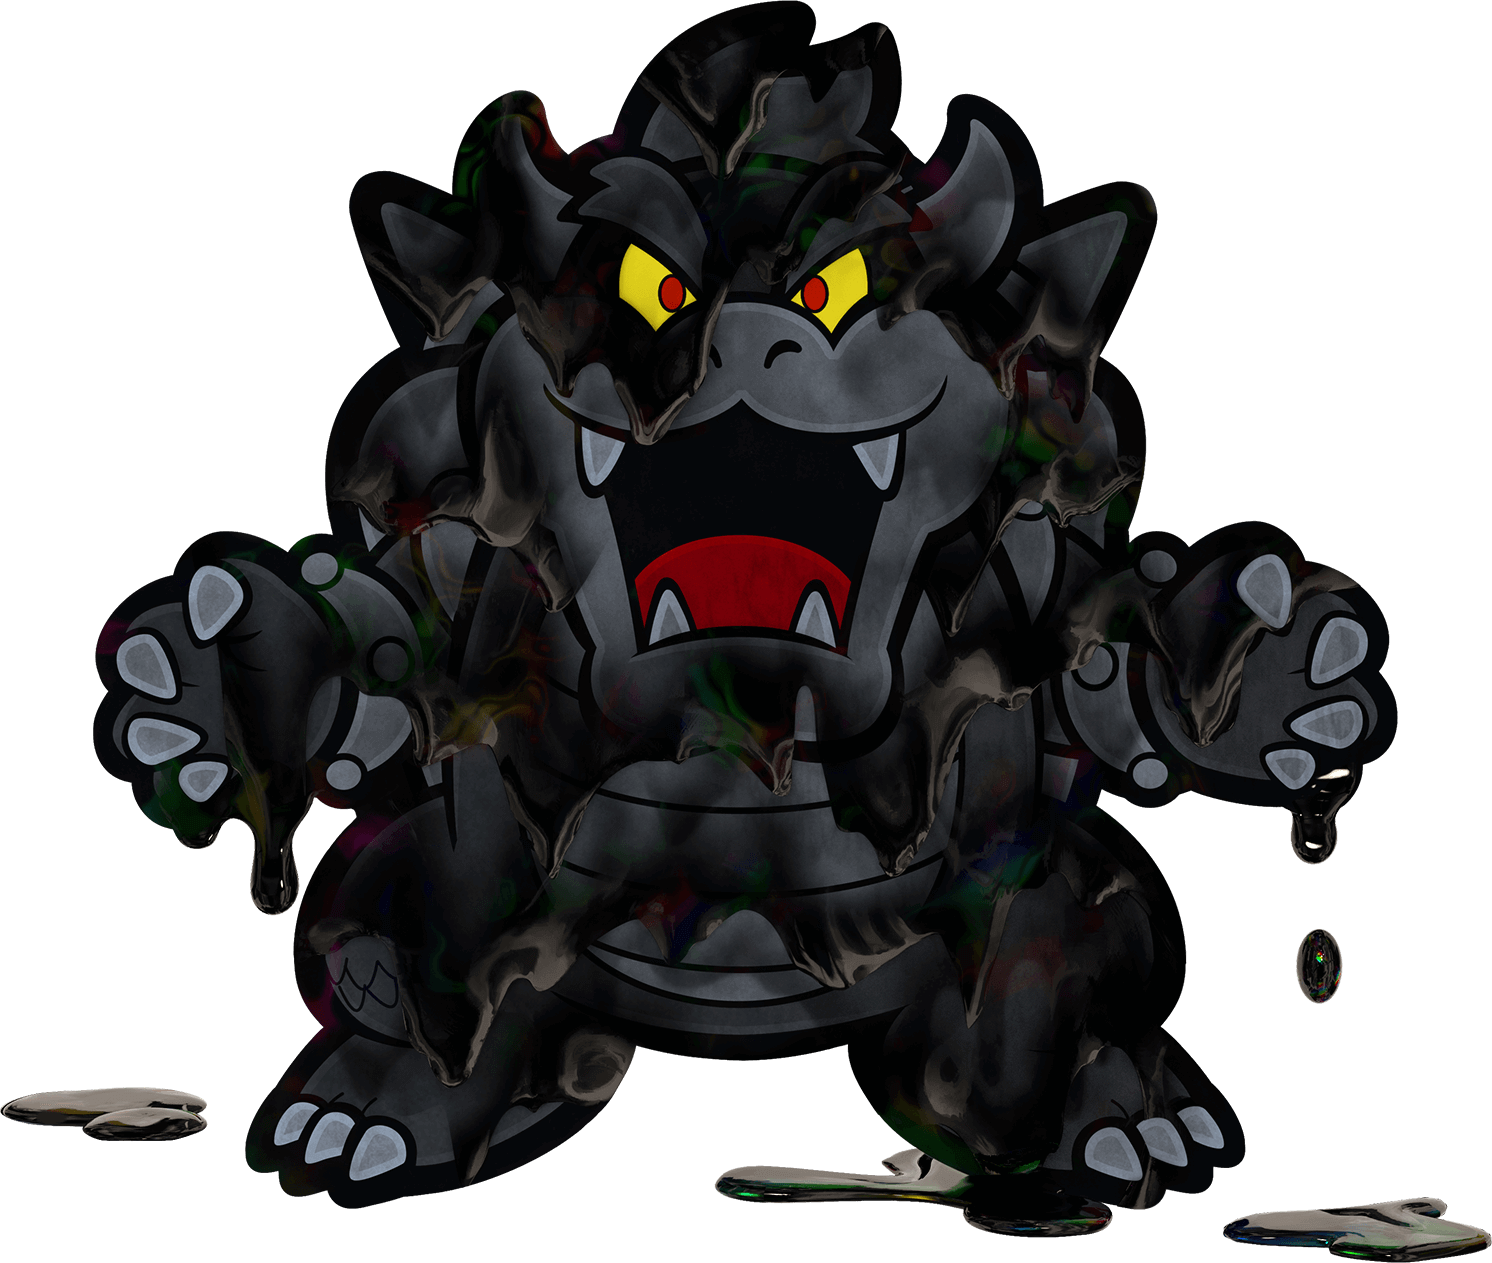 Black Bowser Super Mario Wiki The Mario Encyclopedia